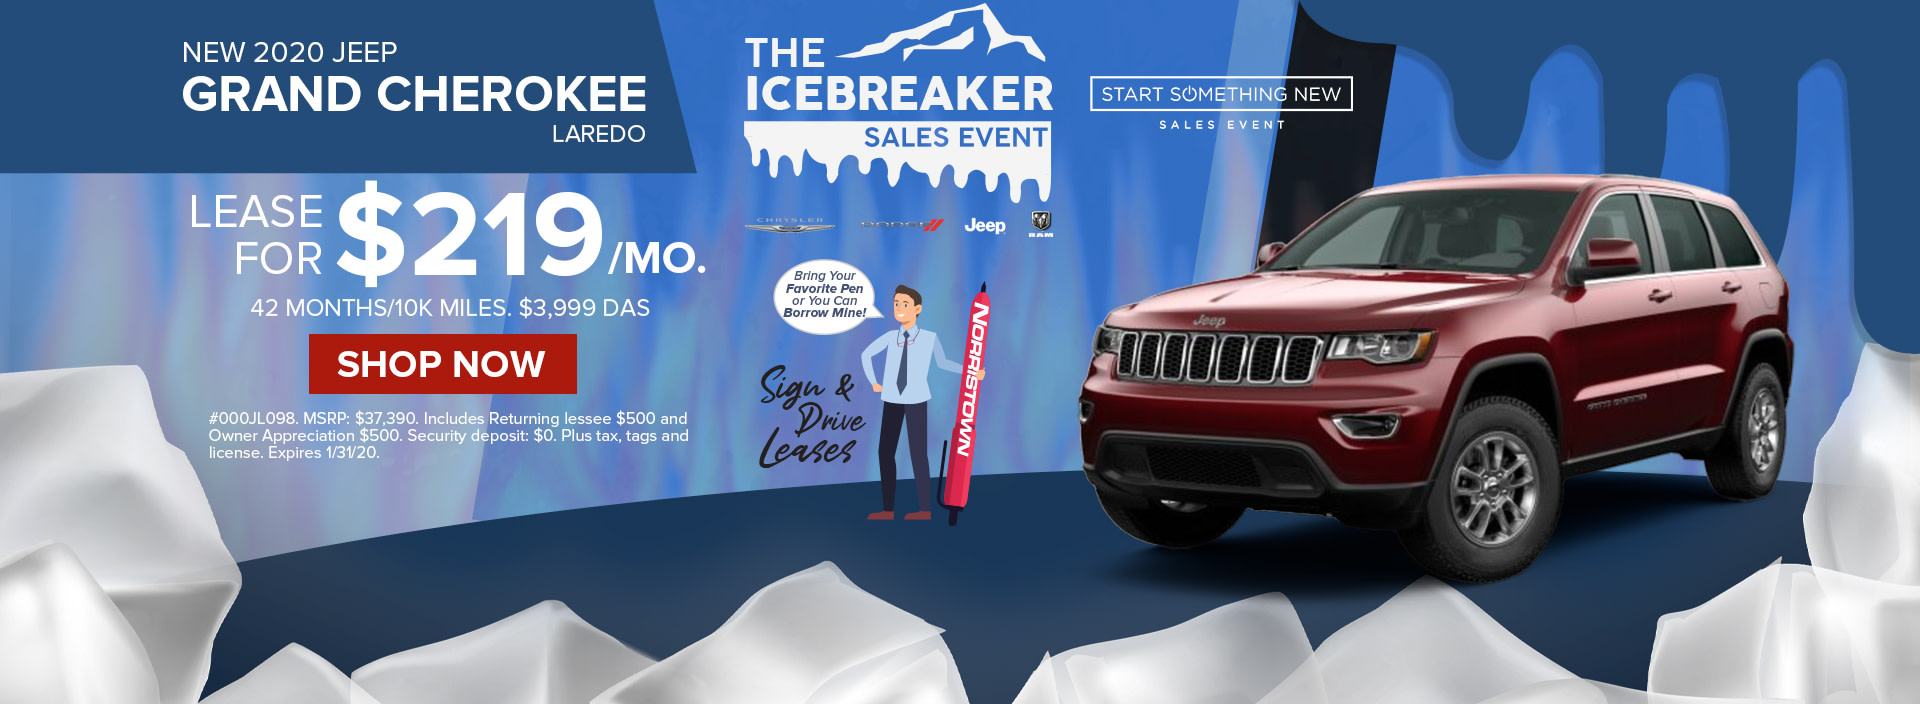 Lease a 2020 Jeep Grand Cherokee for only $219 / month at Norristown